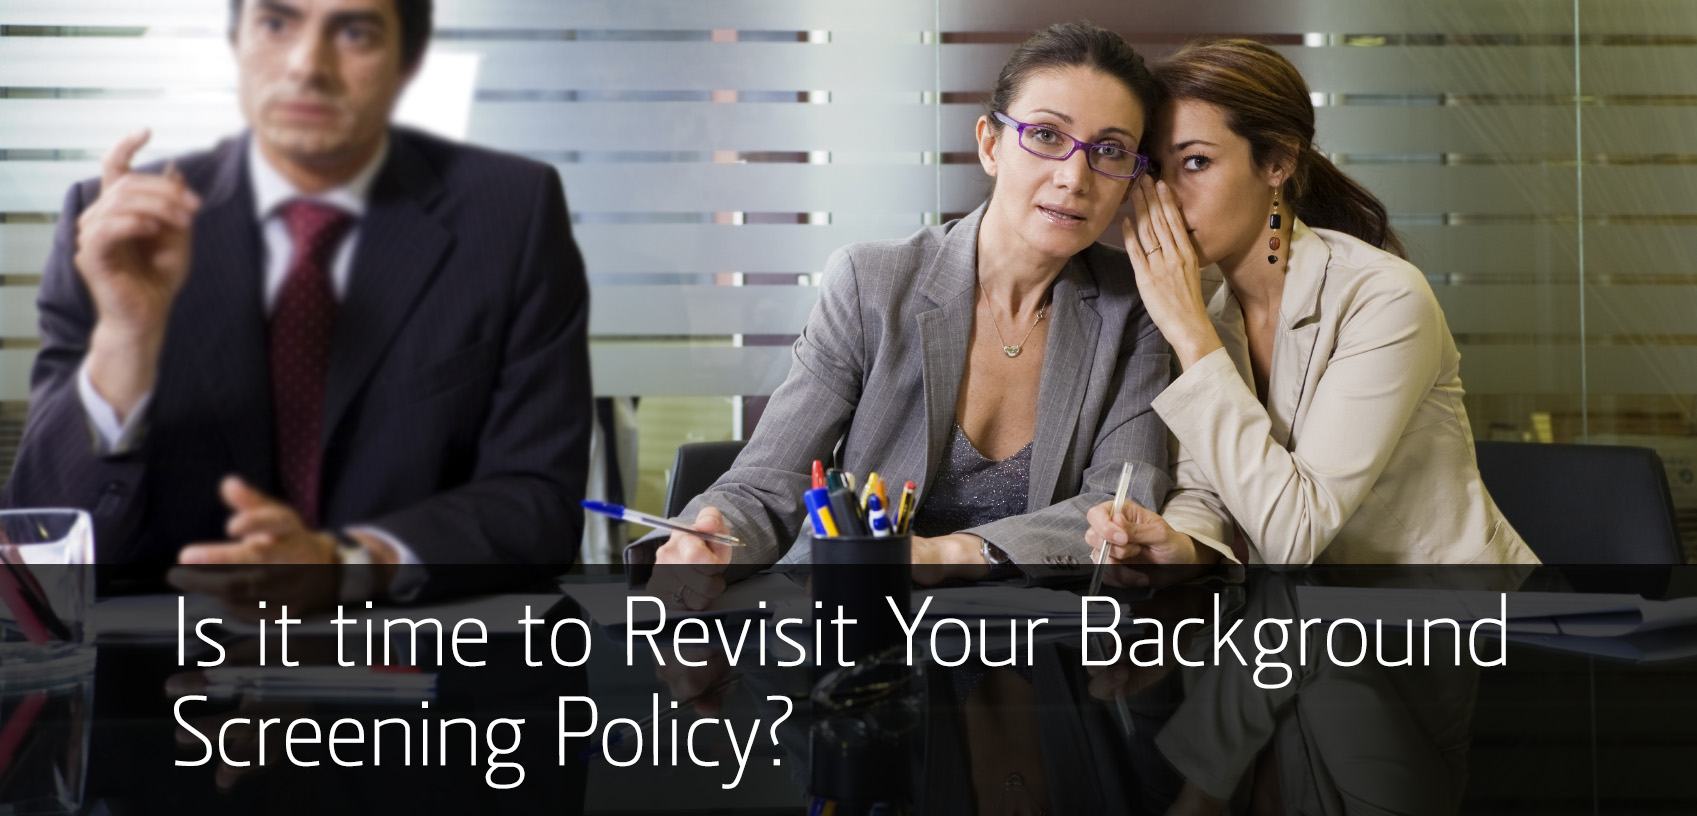 Revisit_Company_Background_Screening_Policy